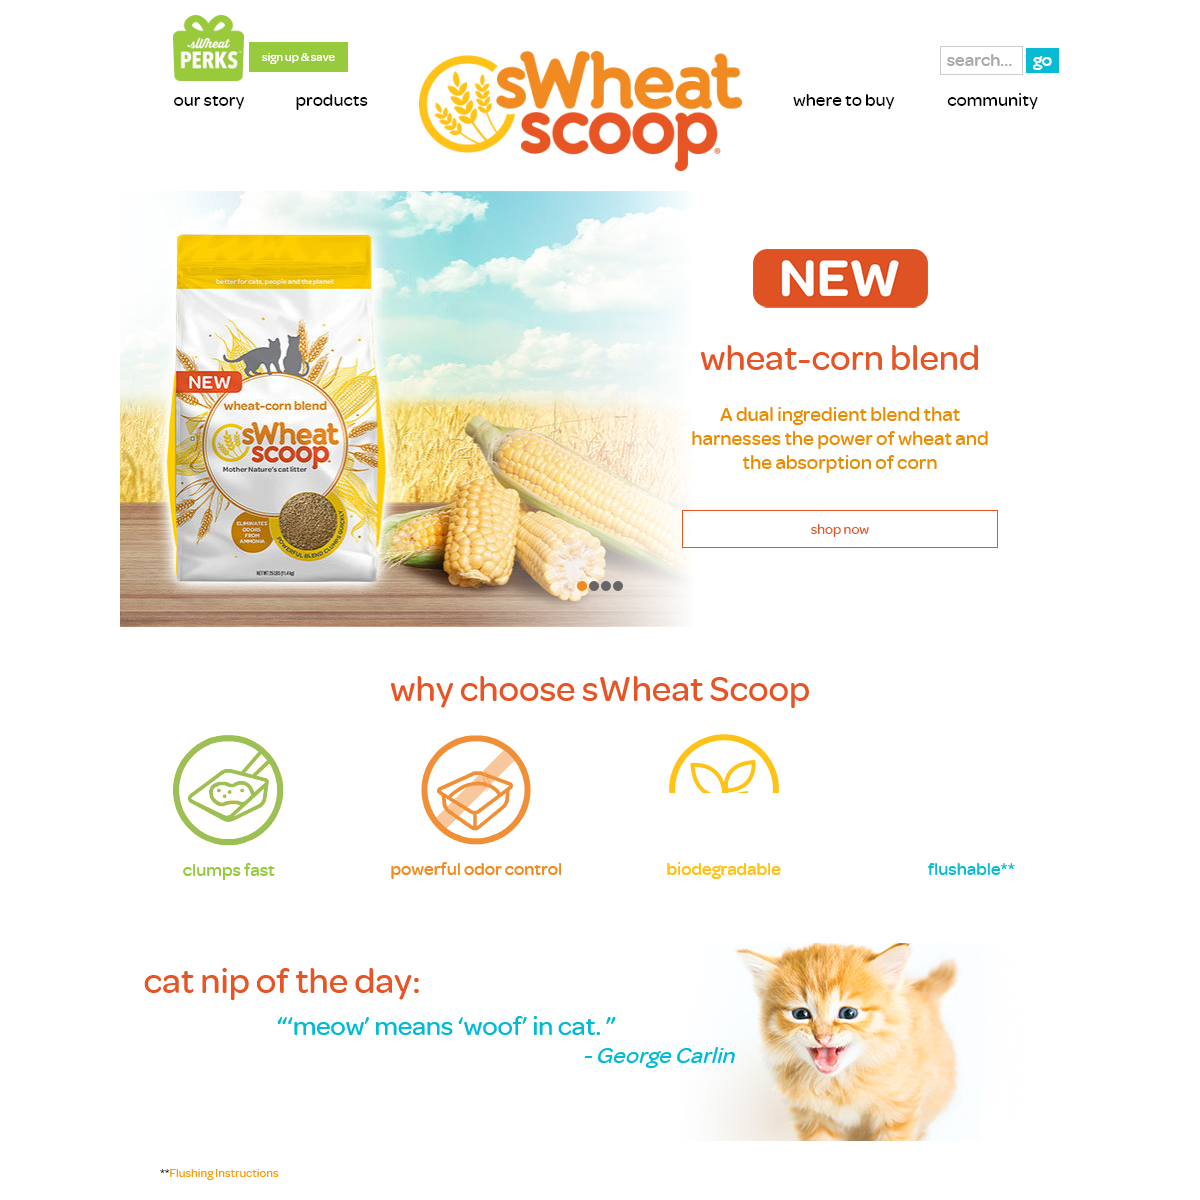 home - sWheat Scoop